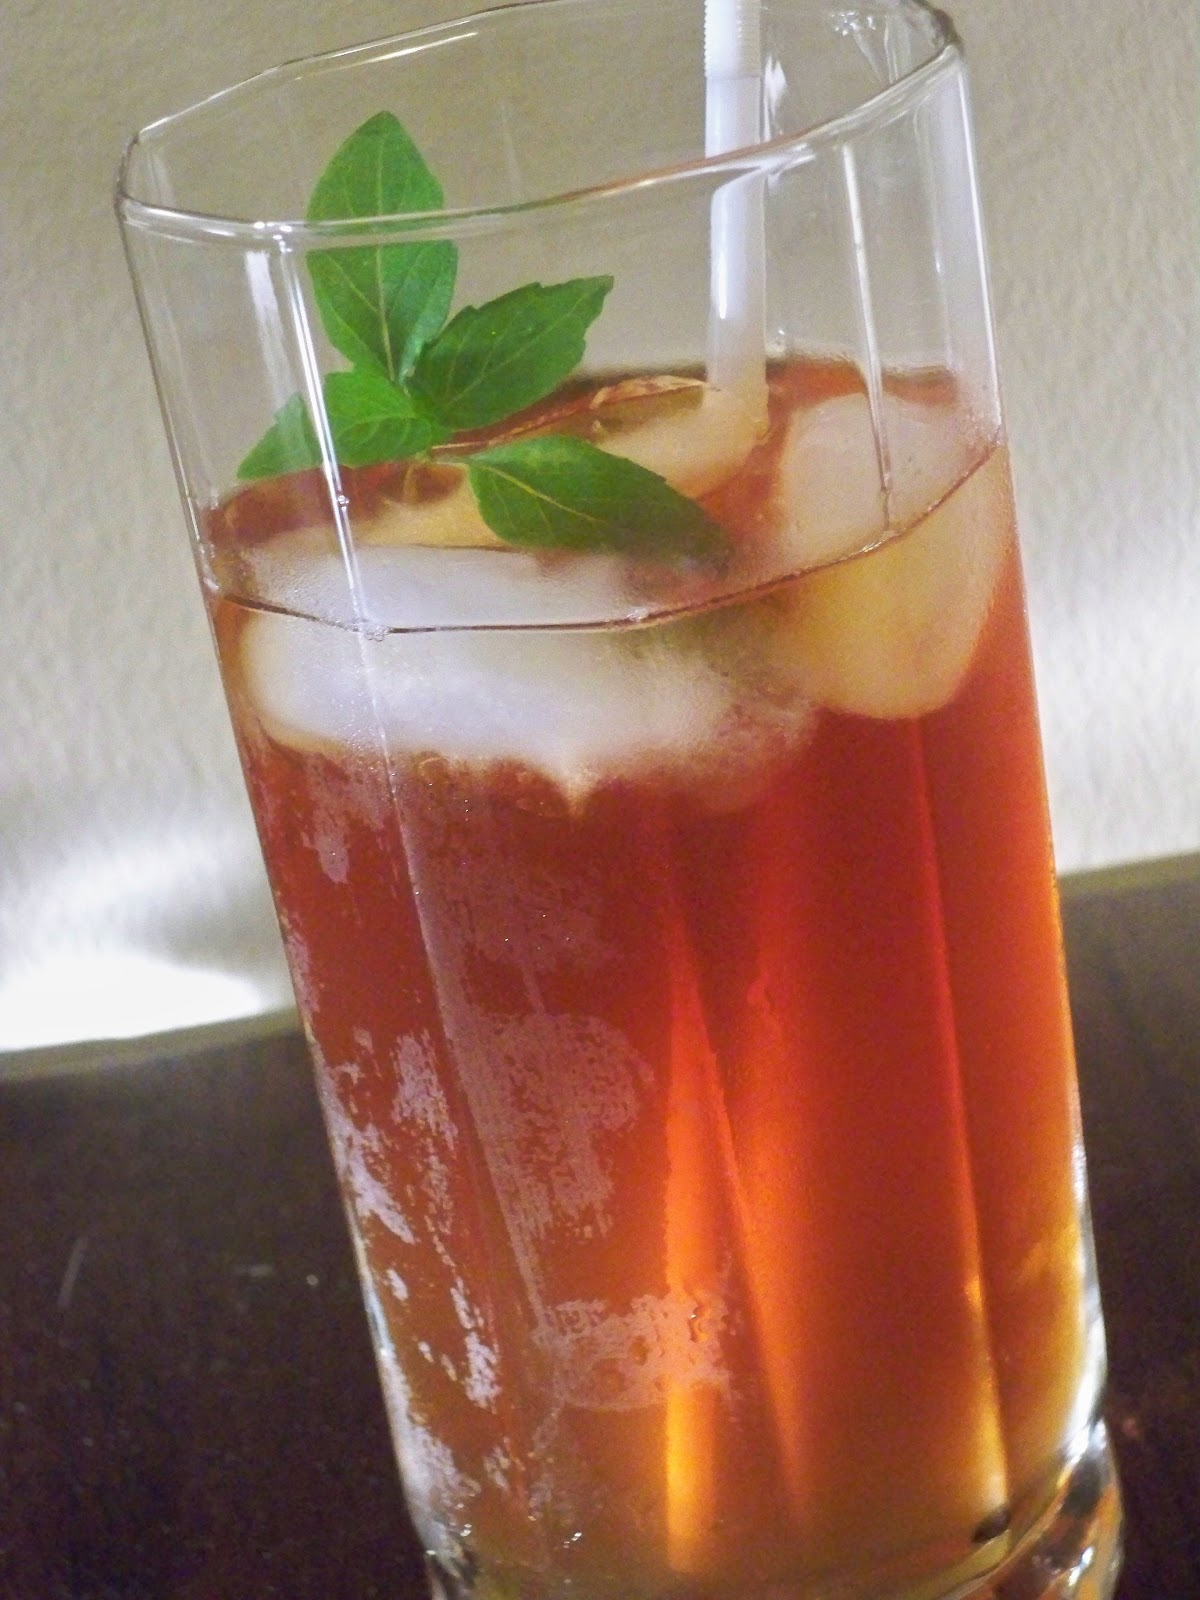 Cinnamon basil sweet tea